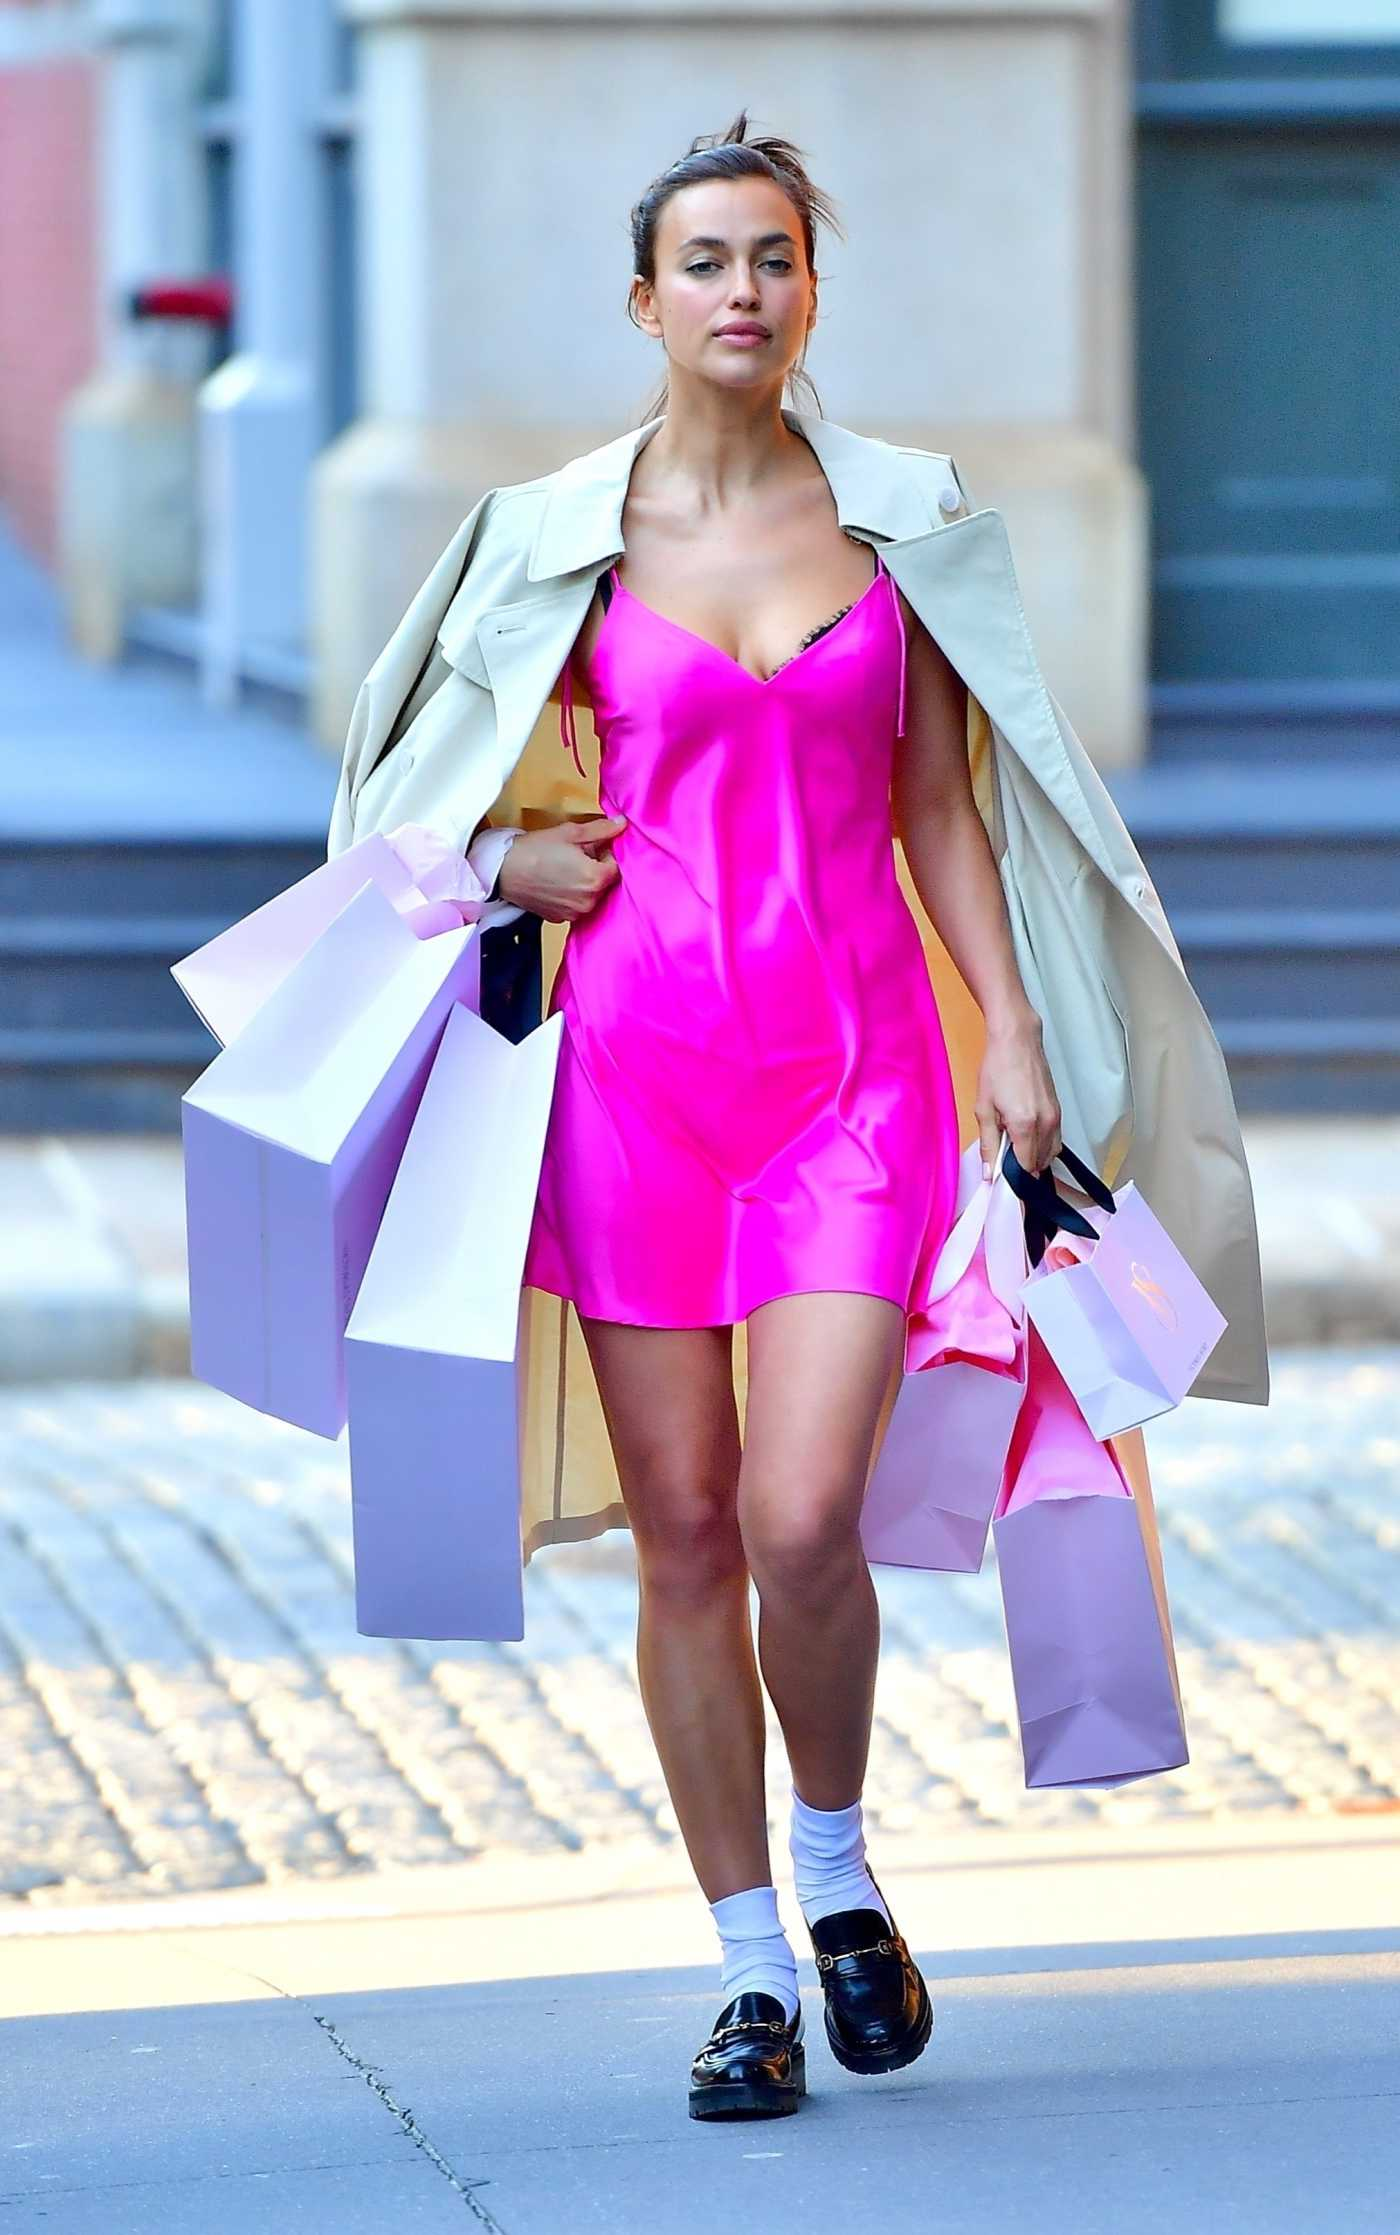 Irina Shayk in a Pink Mini Dress Was Seen on Location for a Victoria's Secret Photoshoot in Tribeca, New York 04/13/2021